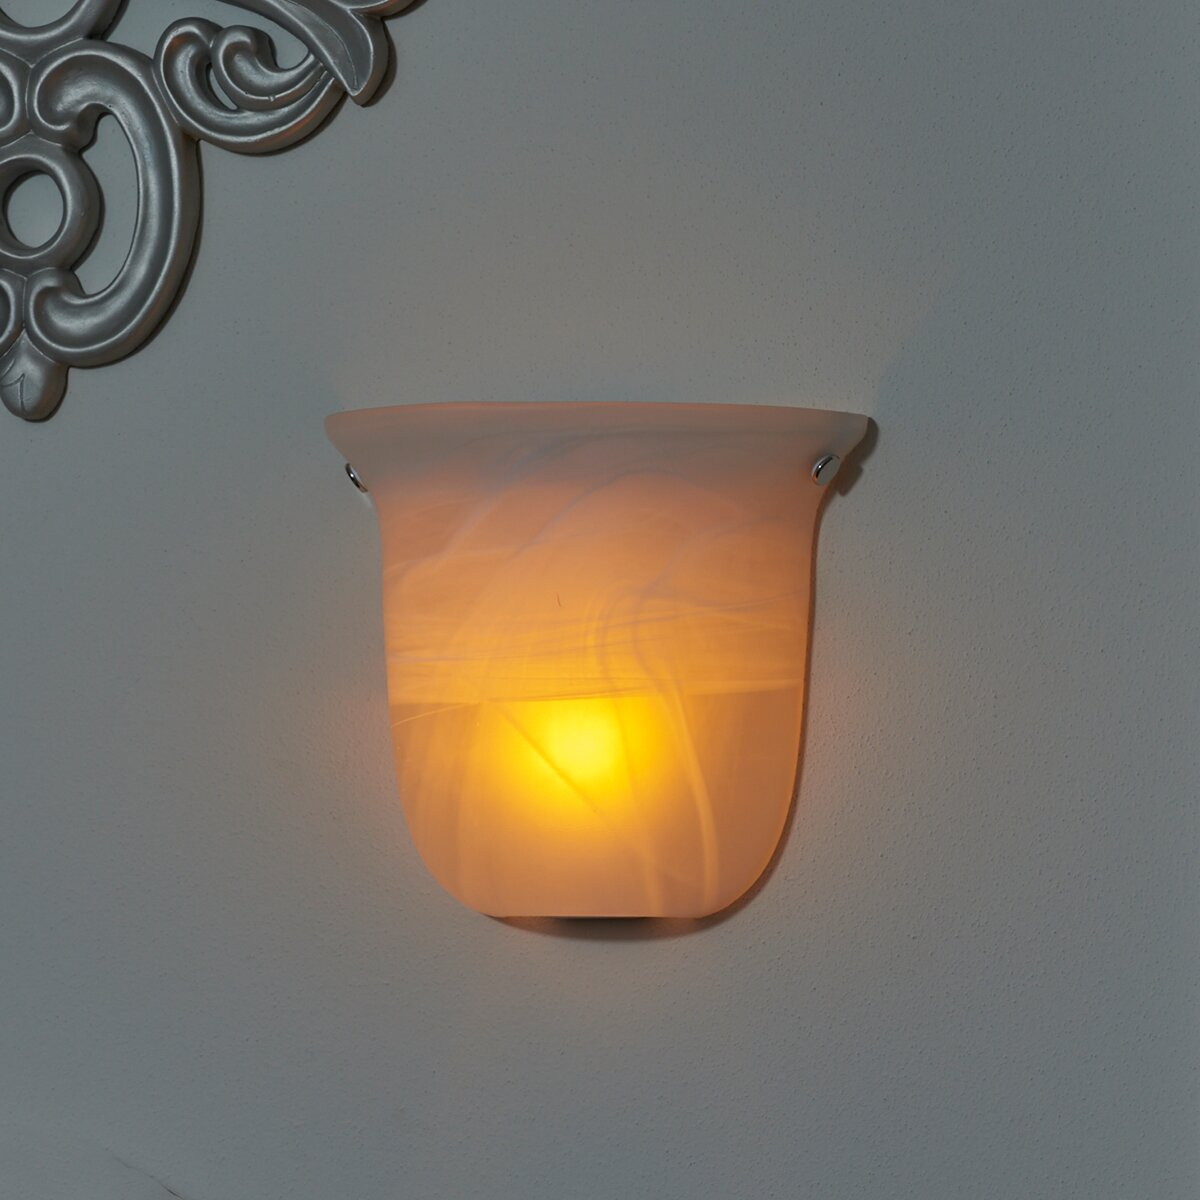 It 39 S Exciting Lighting 7 Light Bell Wall Sconce Reviews